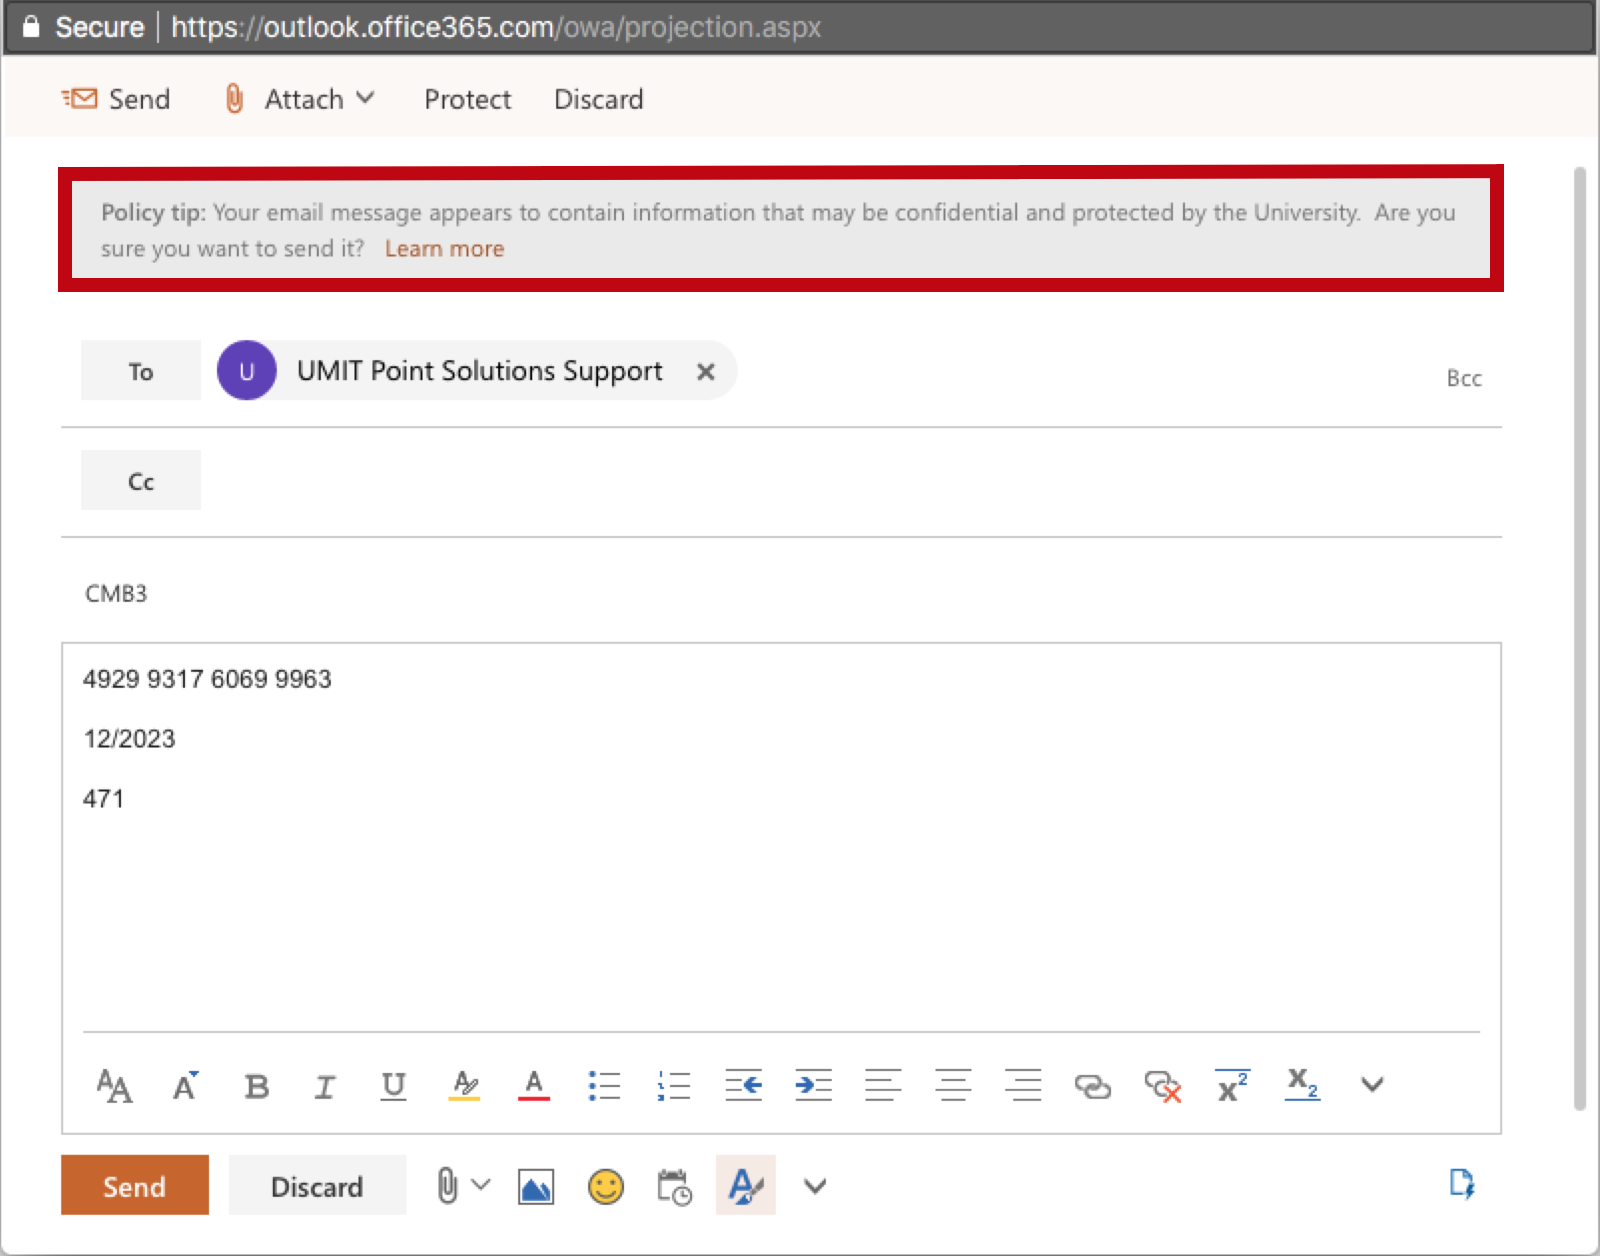 How to send secure email using outlook 2020